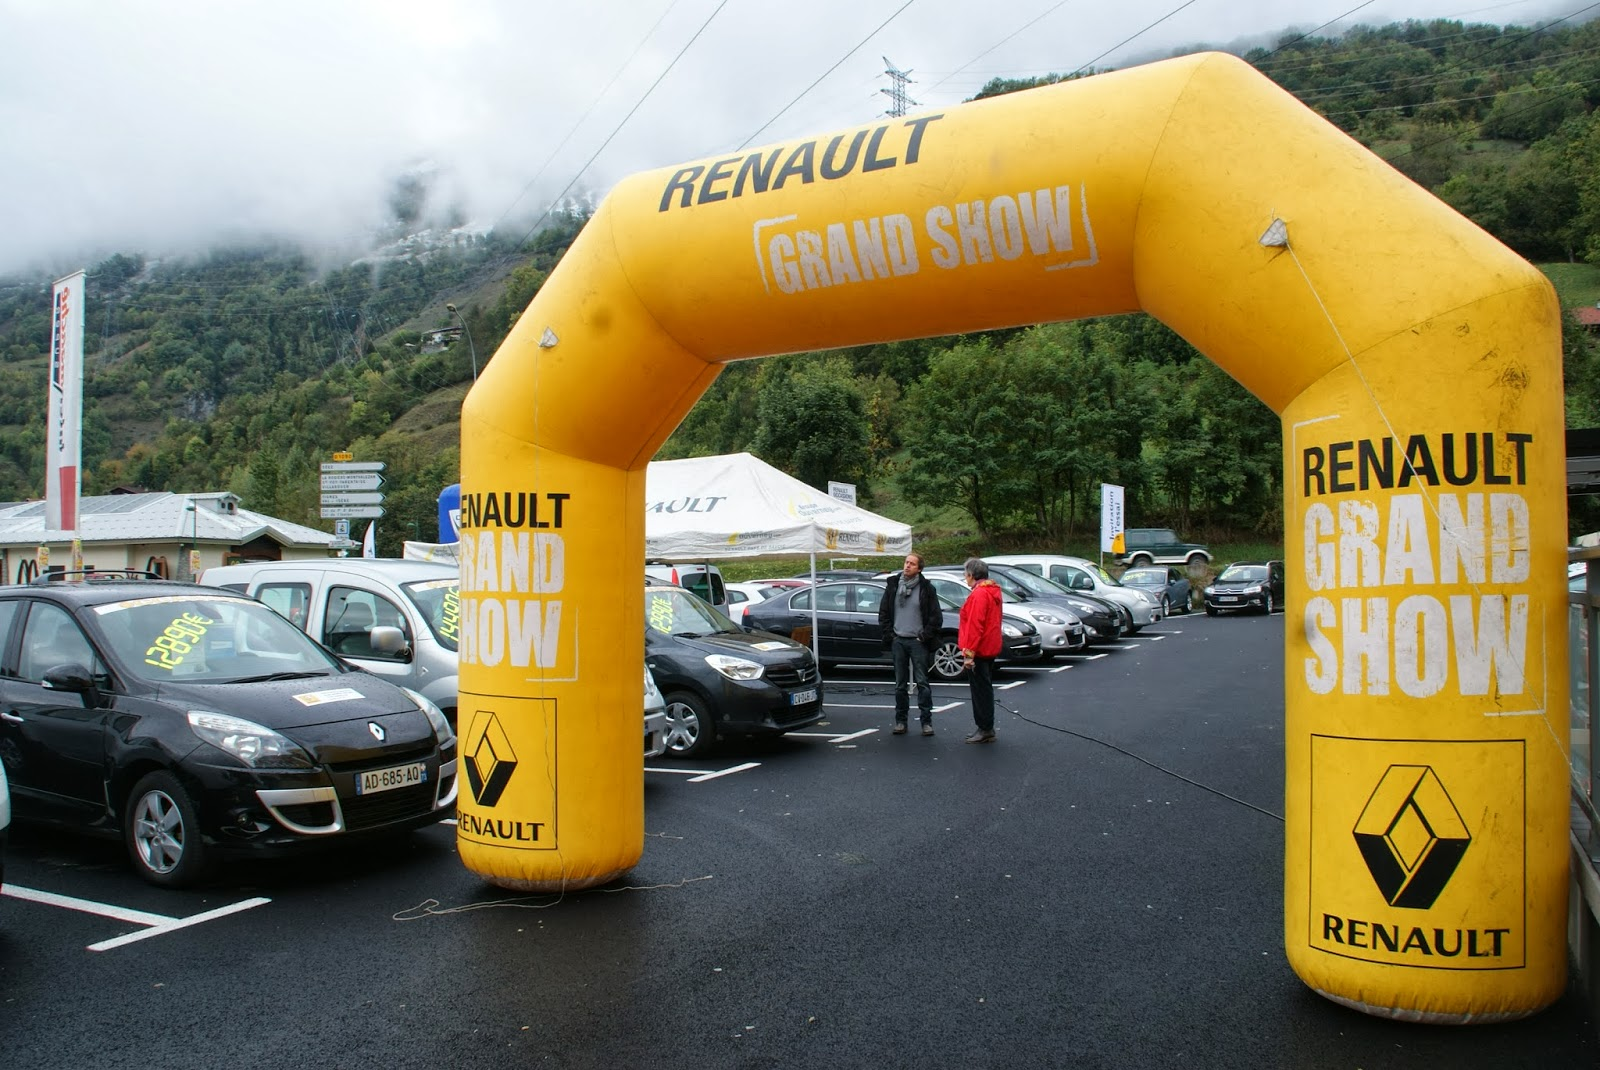 ARCHE-GONFLABLE-RENAULT